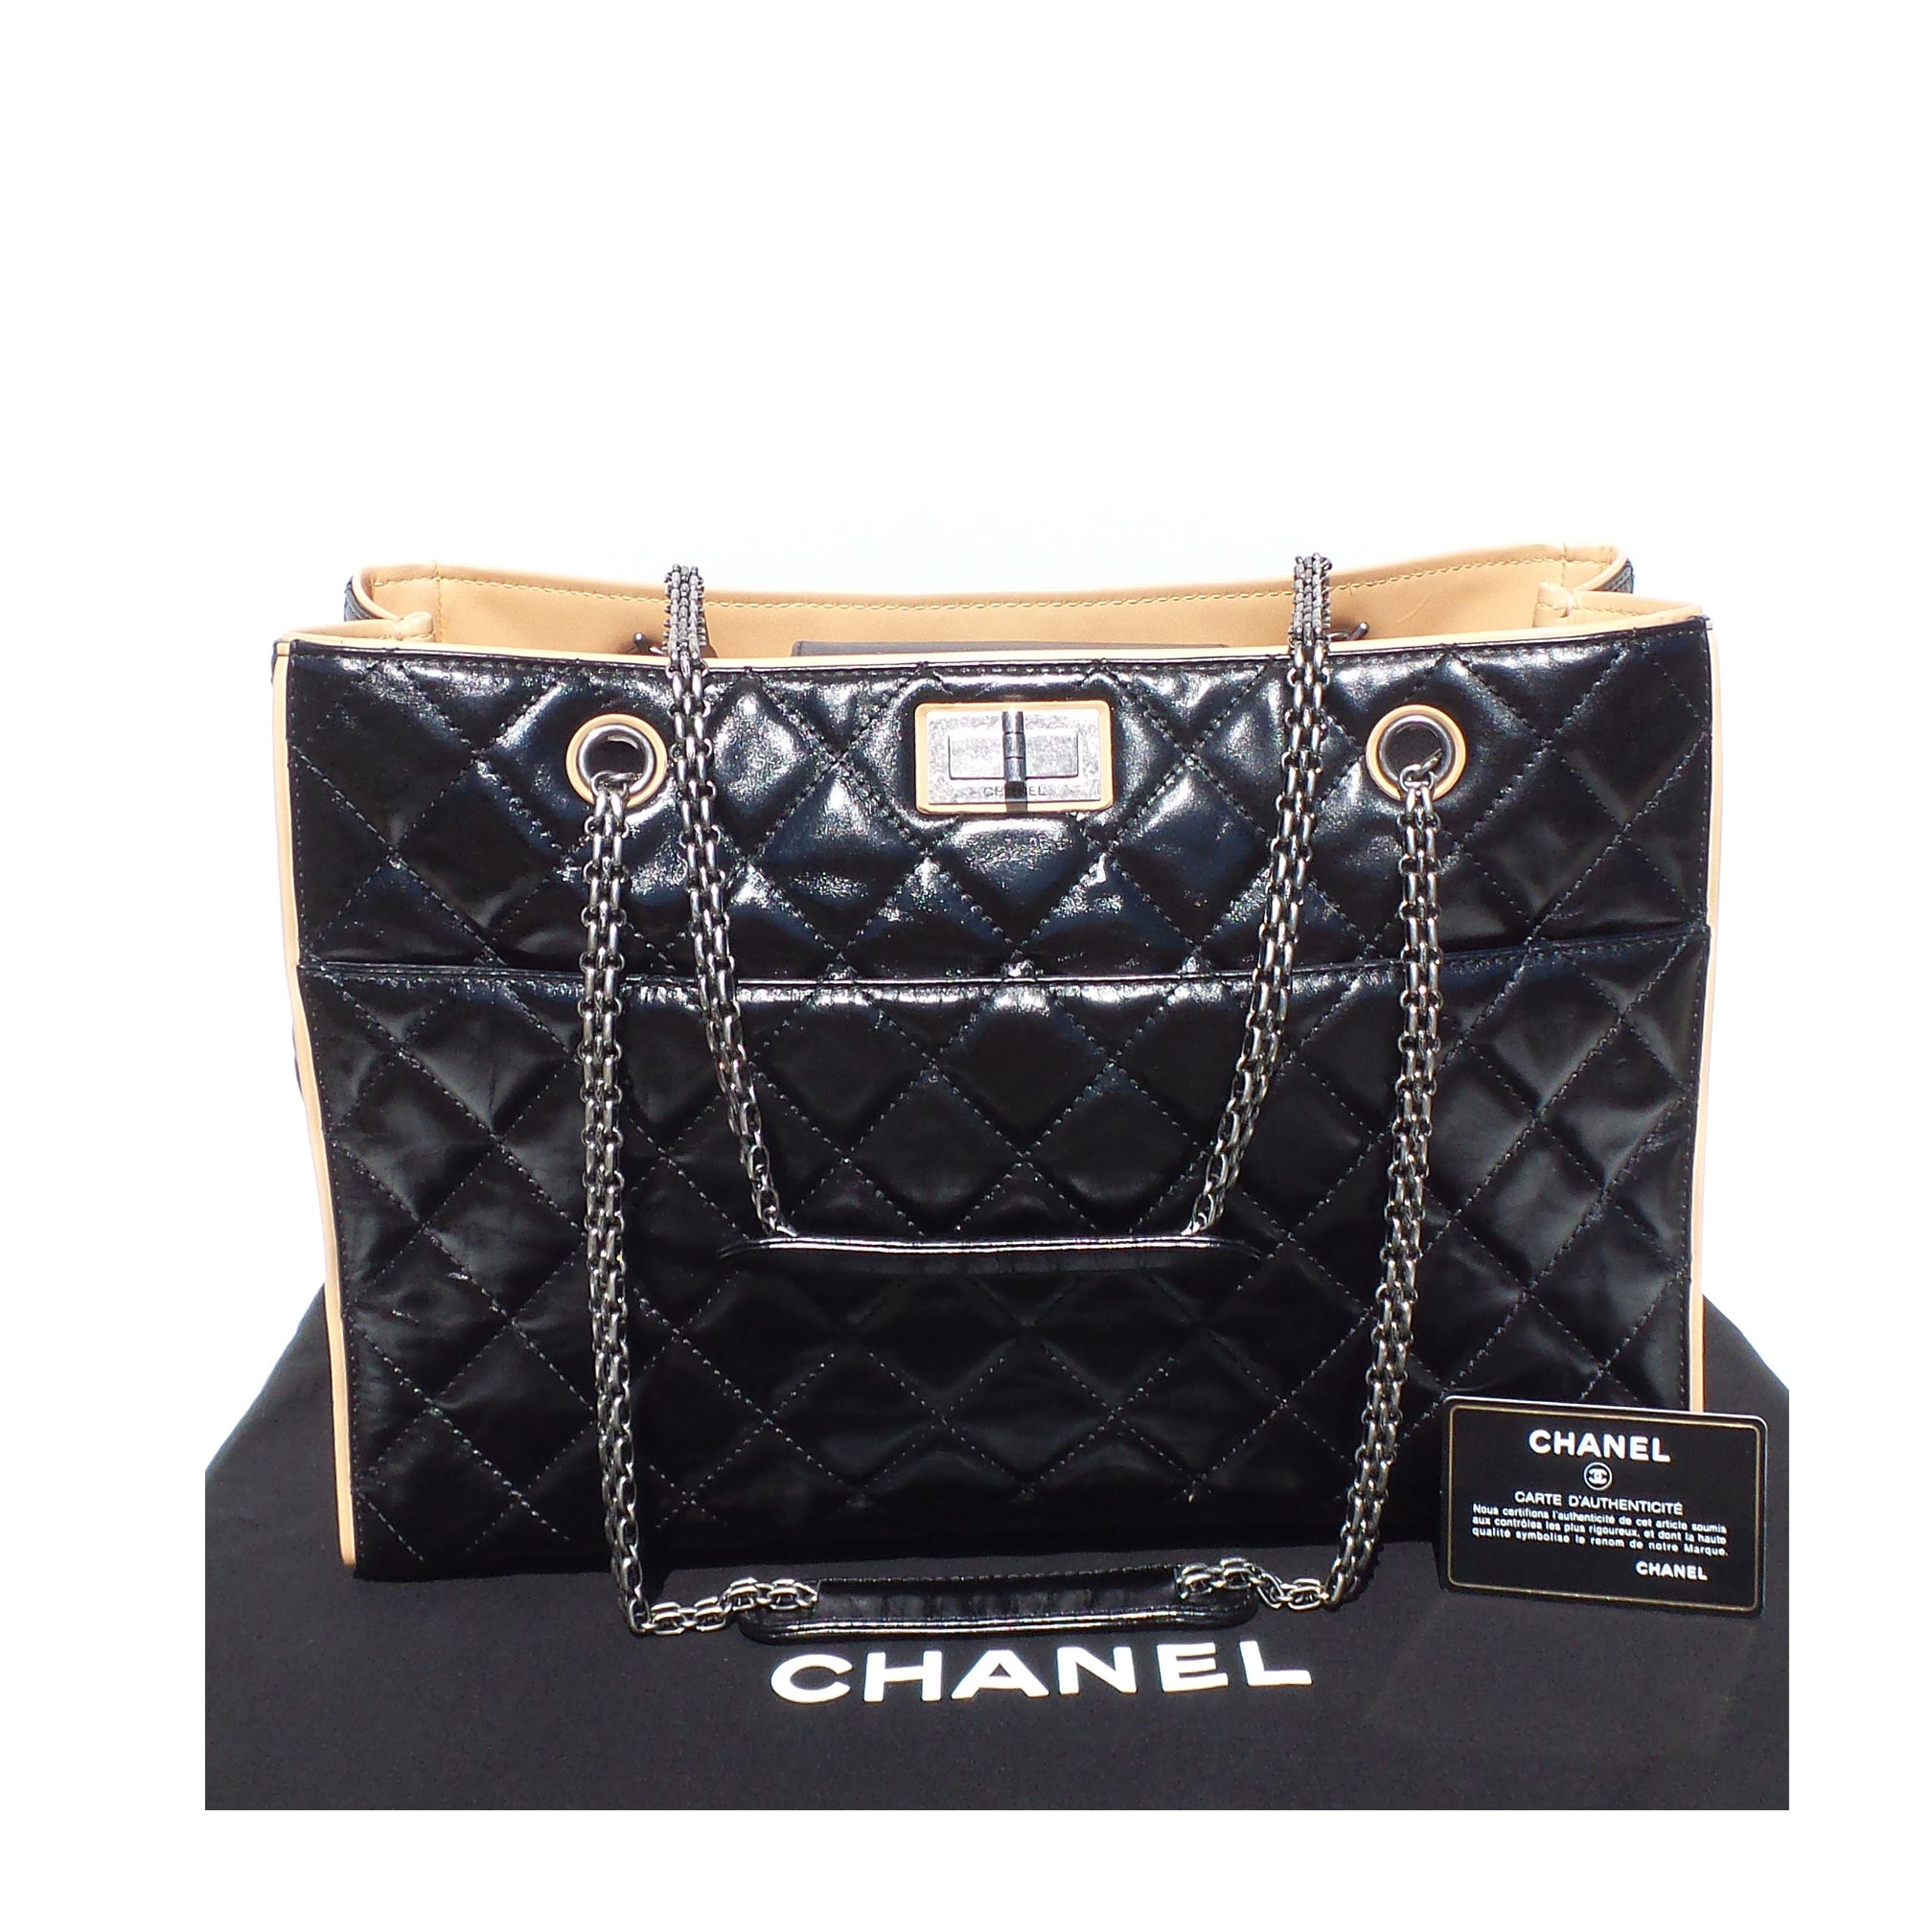 1dbe5d63fac2 CHANEL Black Glazed Quilted Leather Beige 2.55 Reissue Grand Shopping –  Encore Resale.com